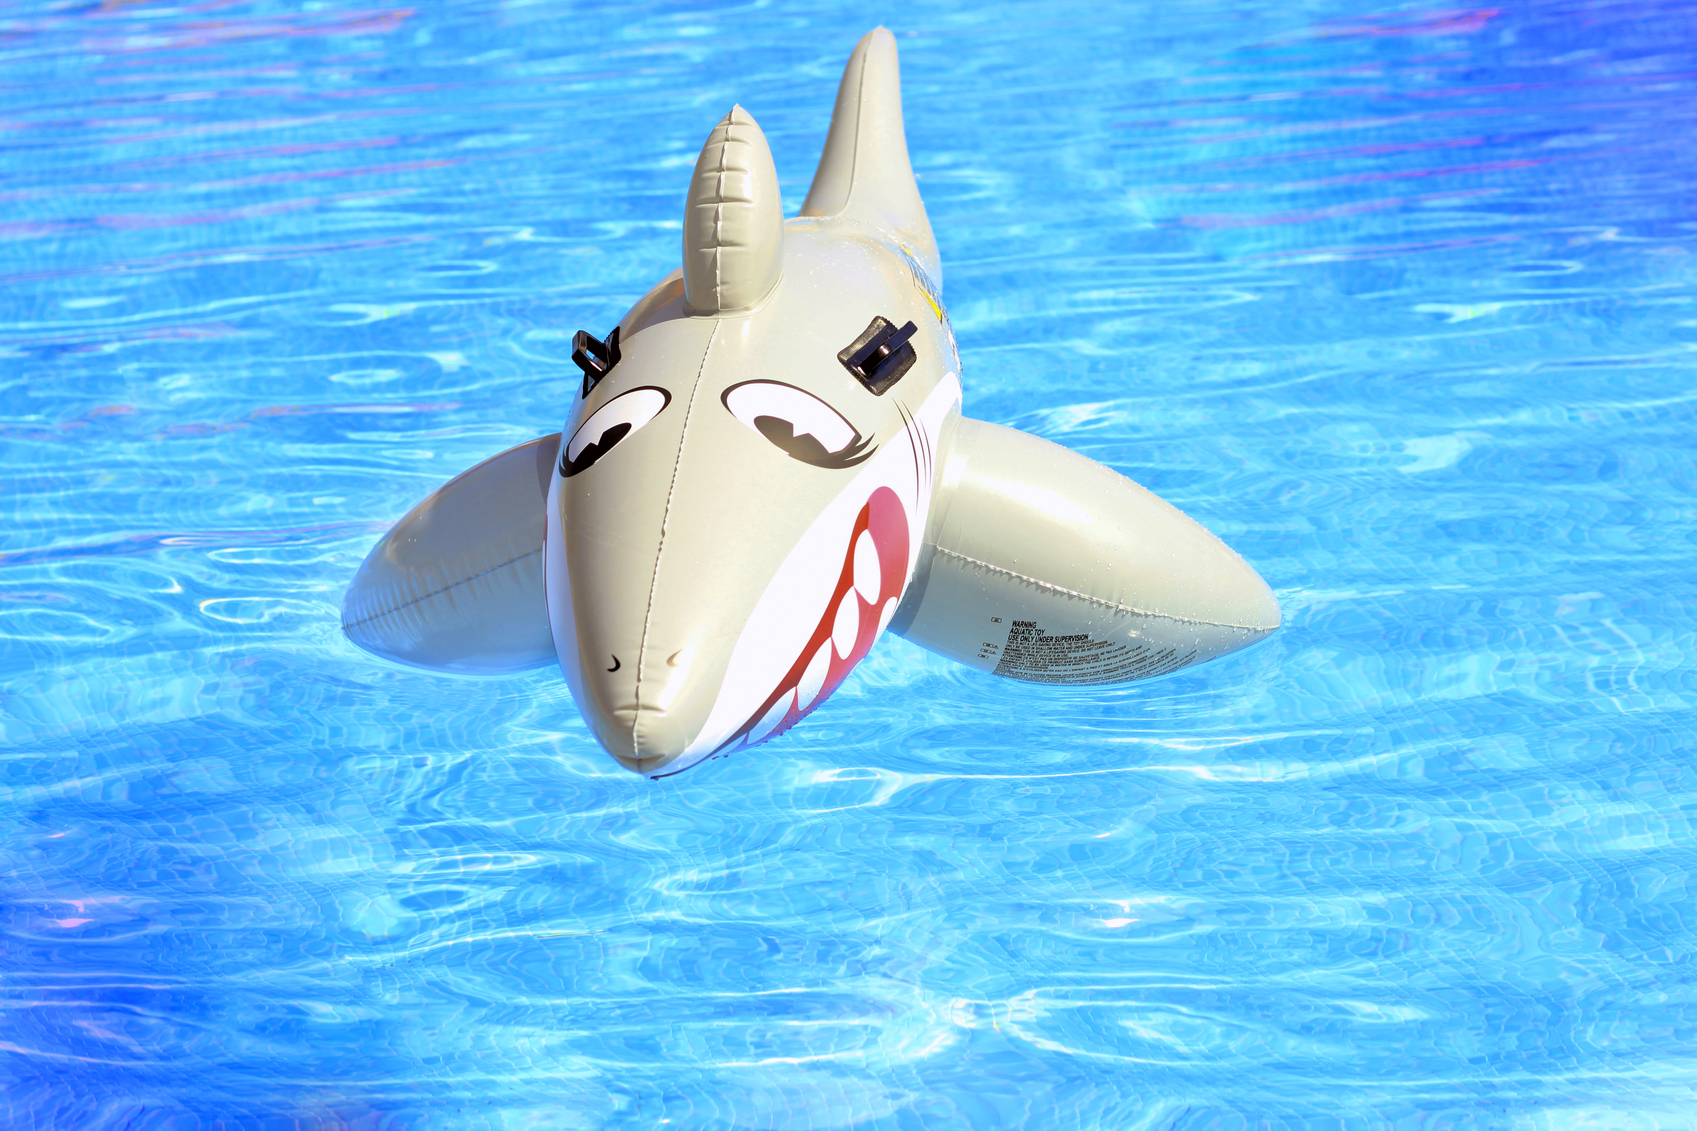 What If There Was A Shark In The Swimming Pool